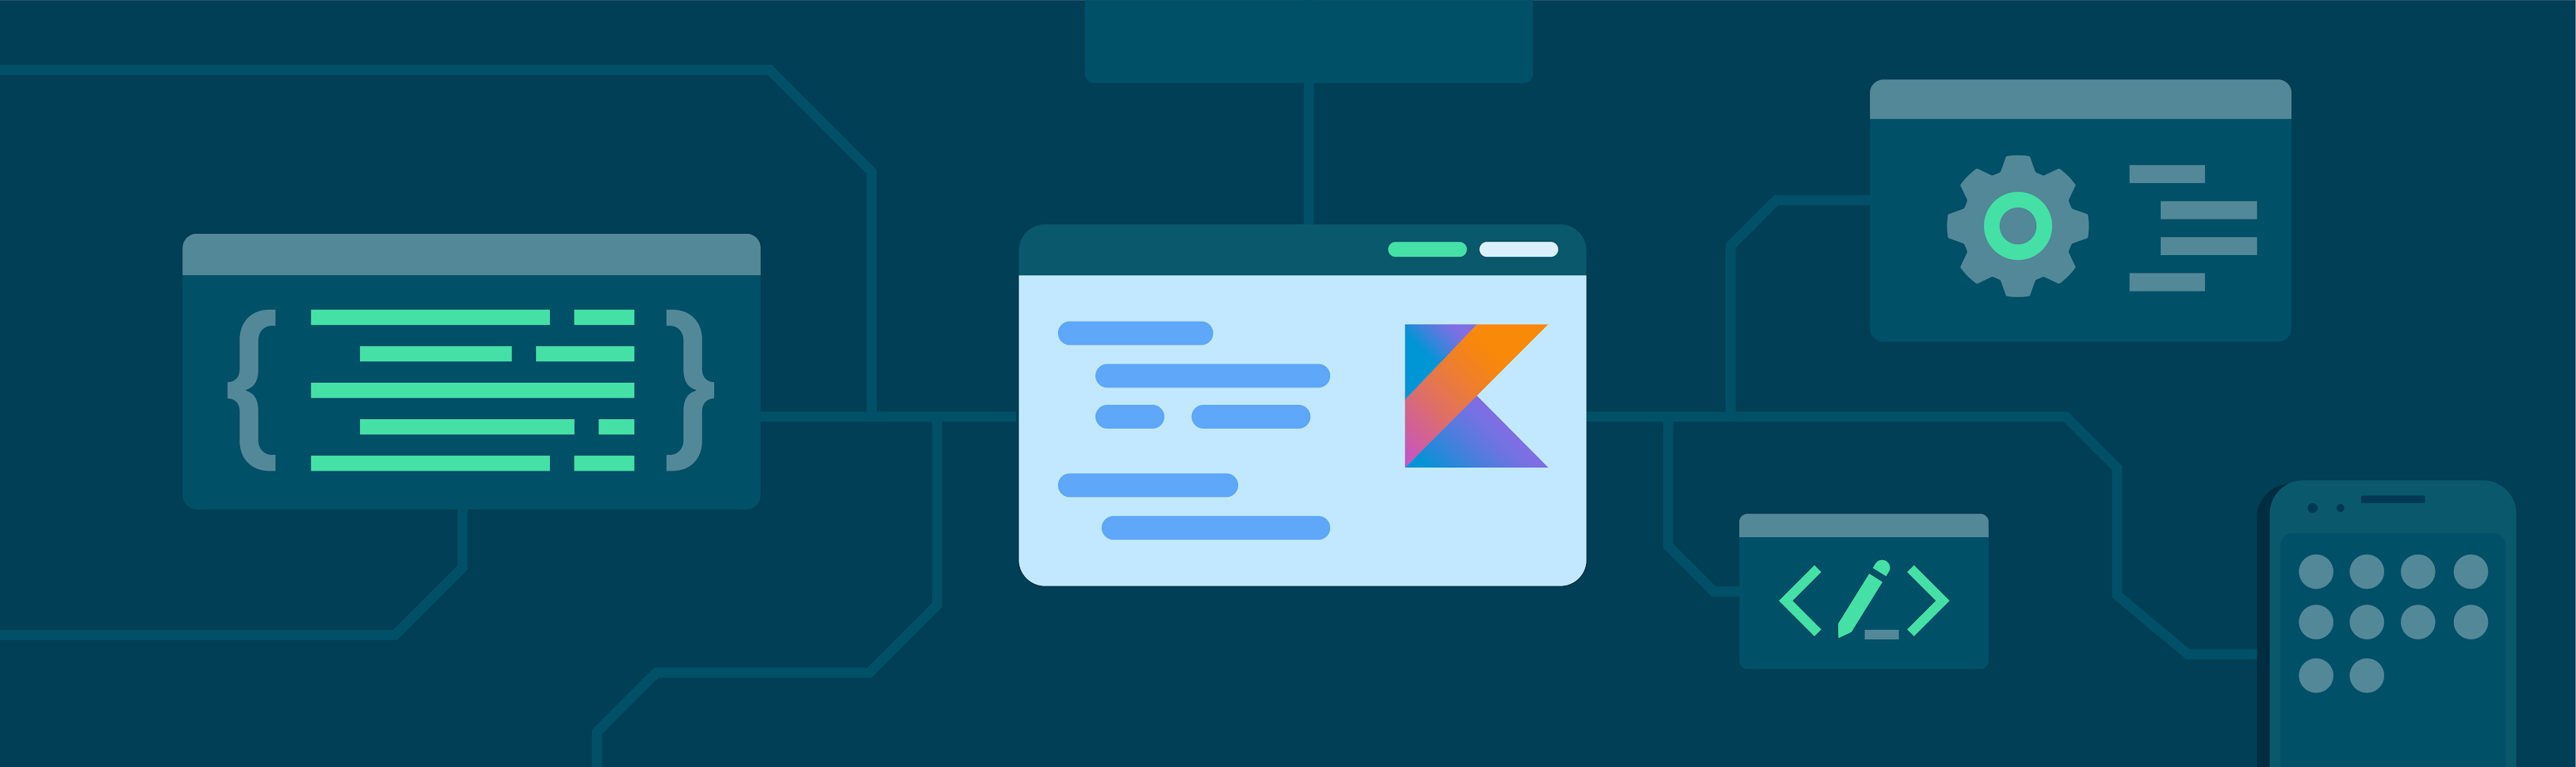 Kotlin and Jetpack image